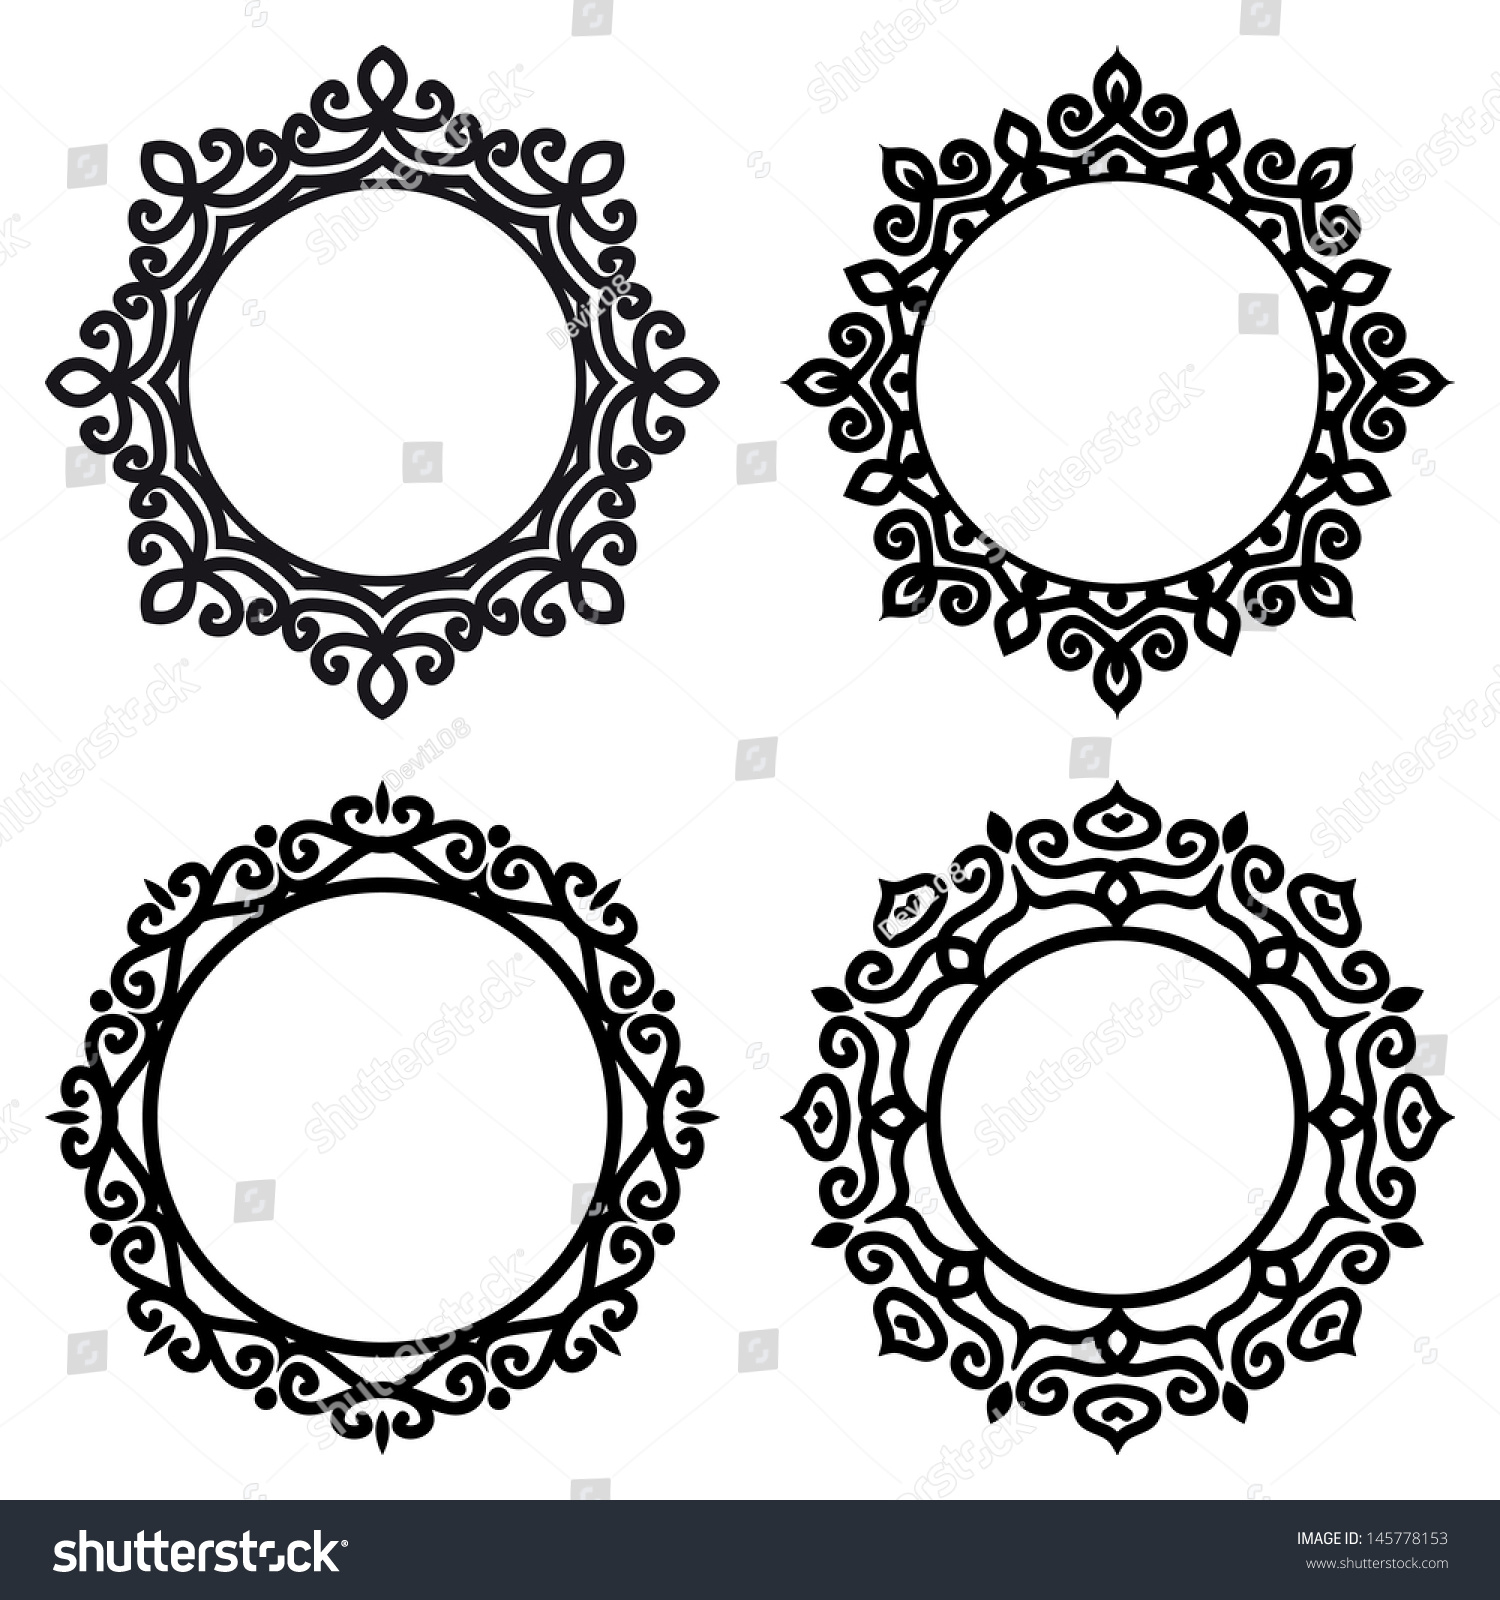 set of circle ornate frames